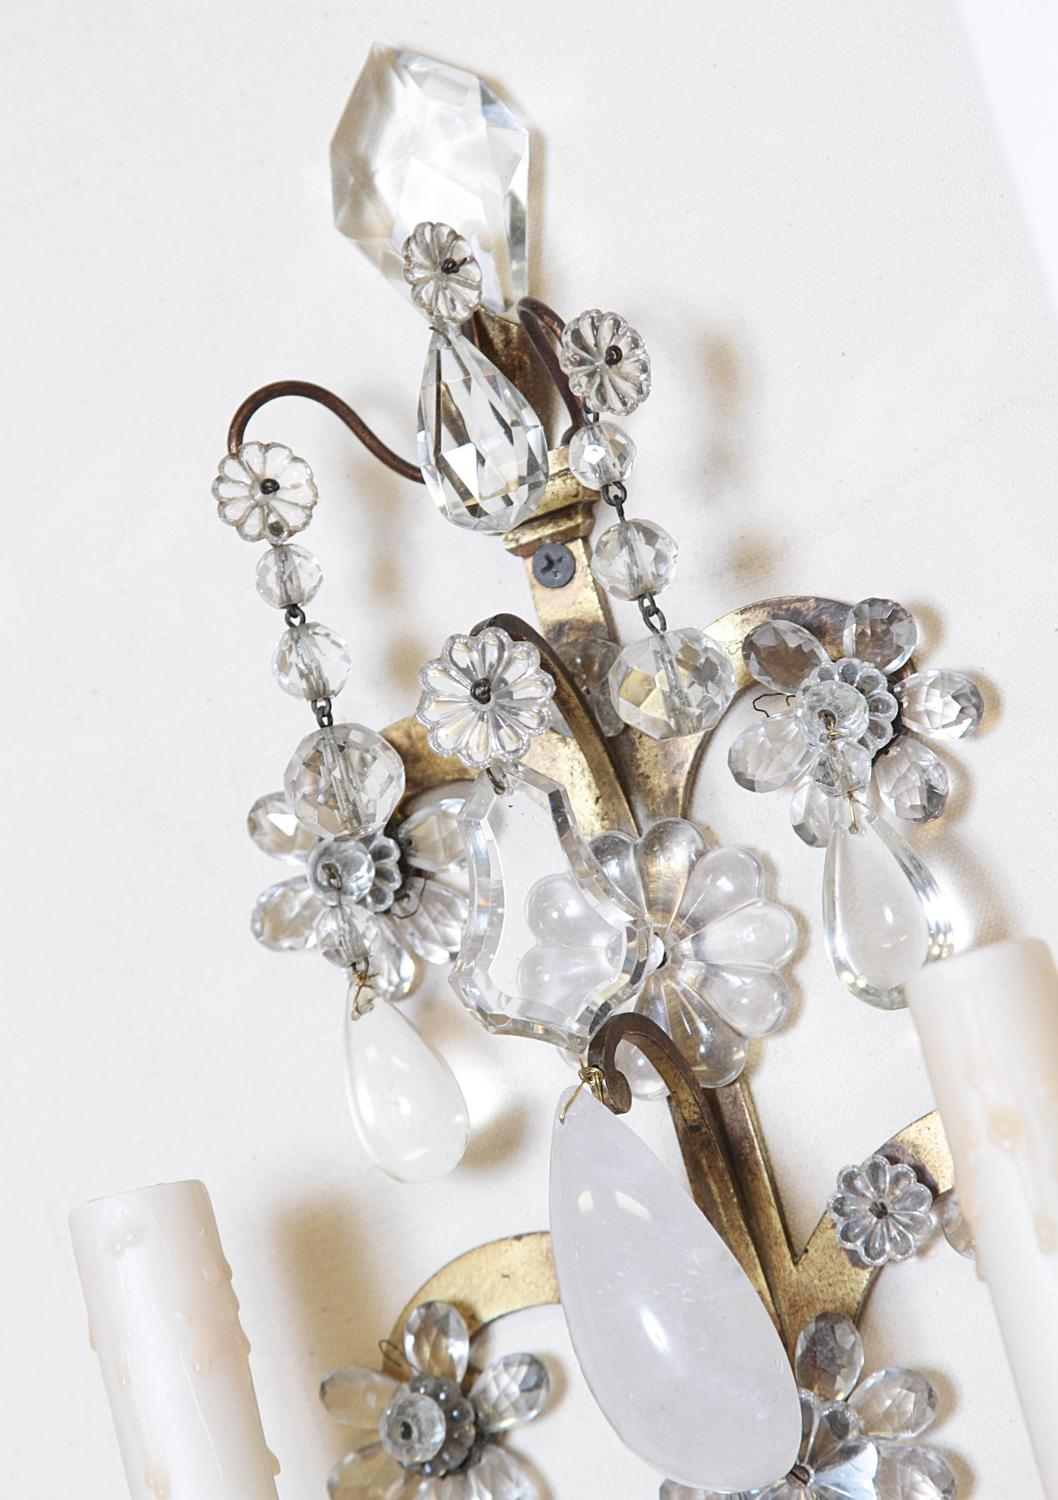 French Crystal Wall Sconces : Pair of French Crystal and Bronze Wall Sconces at 1stdibs